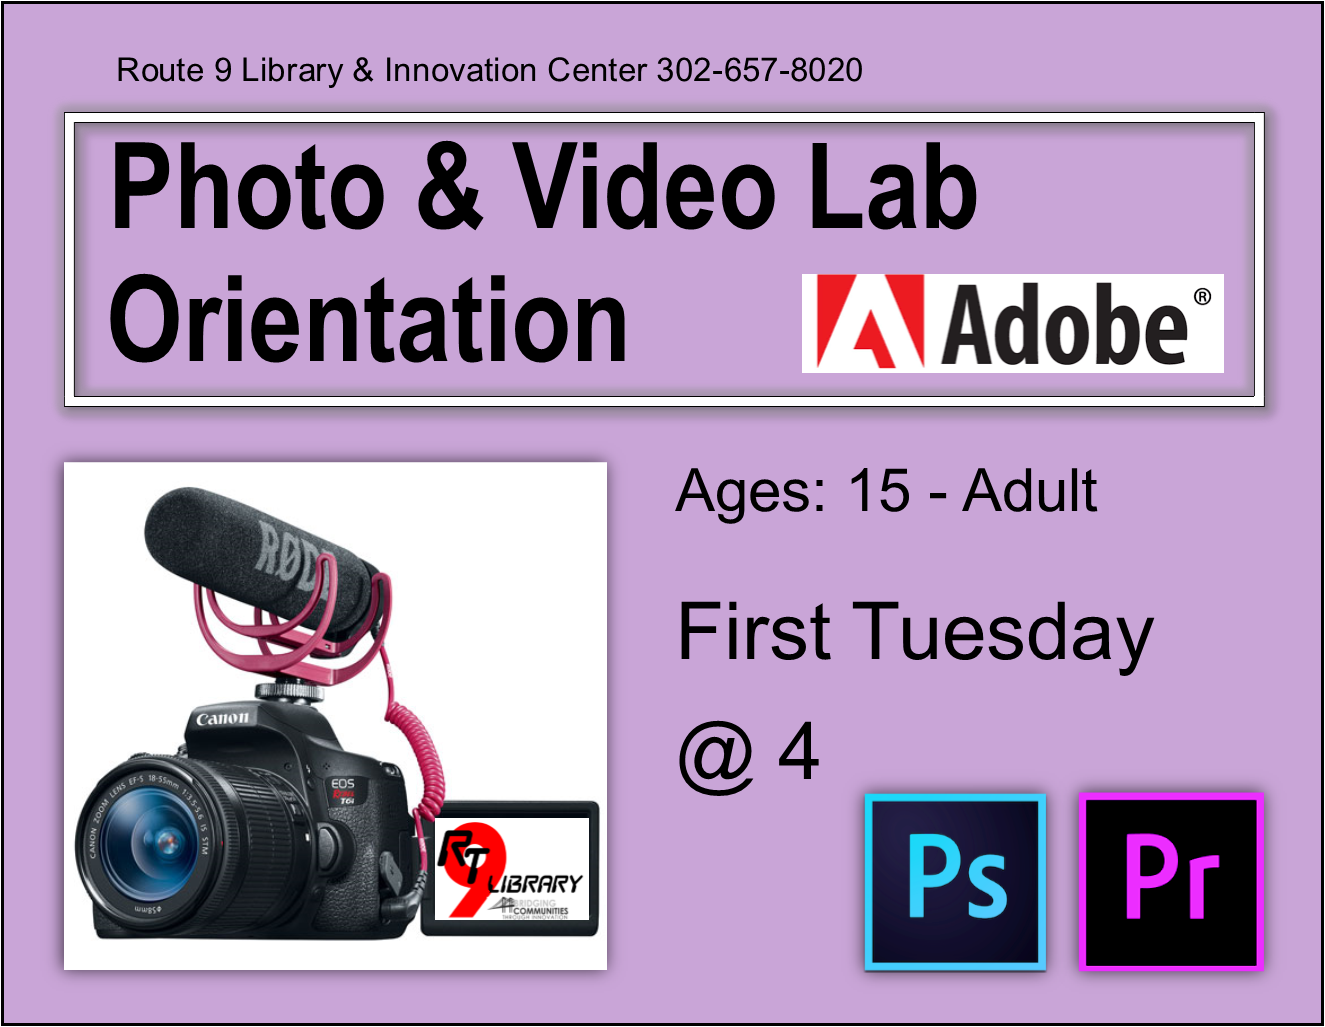 CANCELLED - Photo & Video Lab Orientation